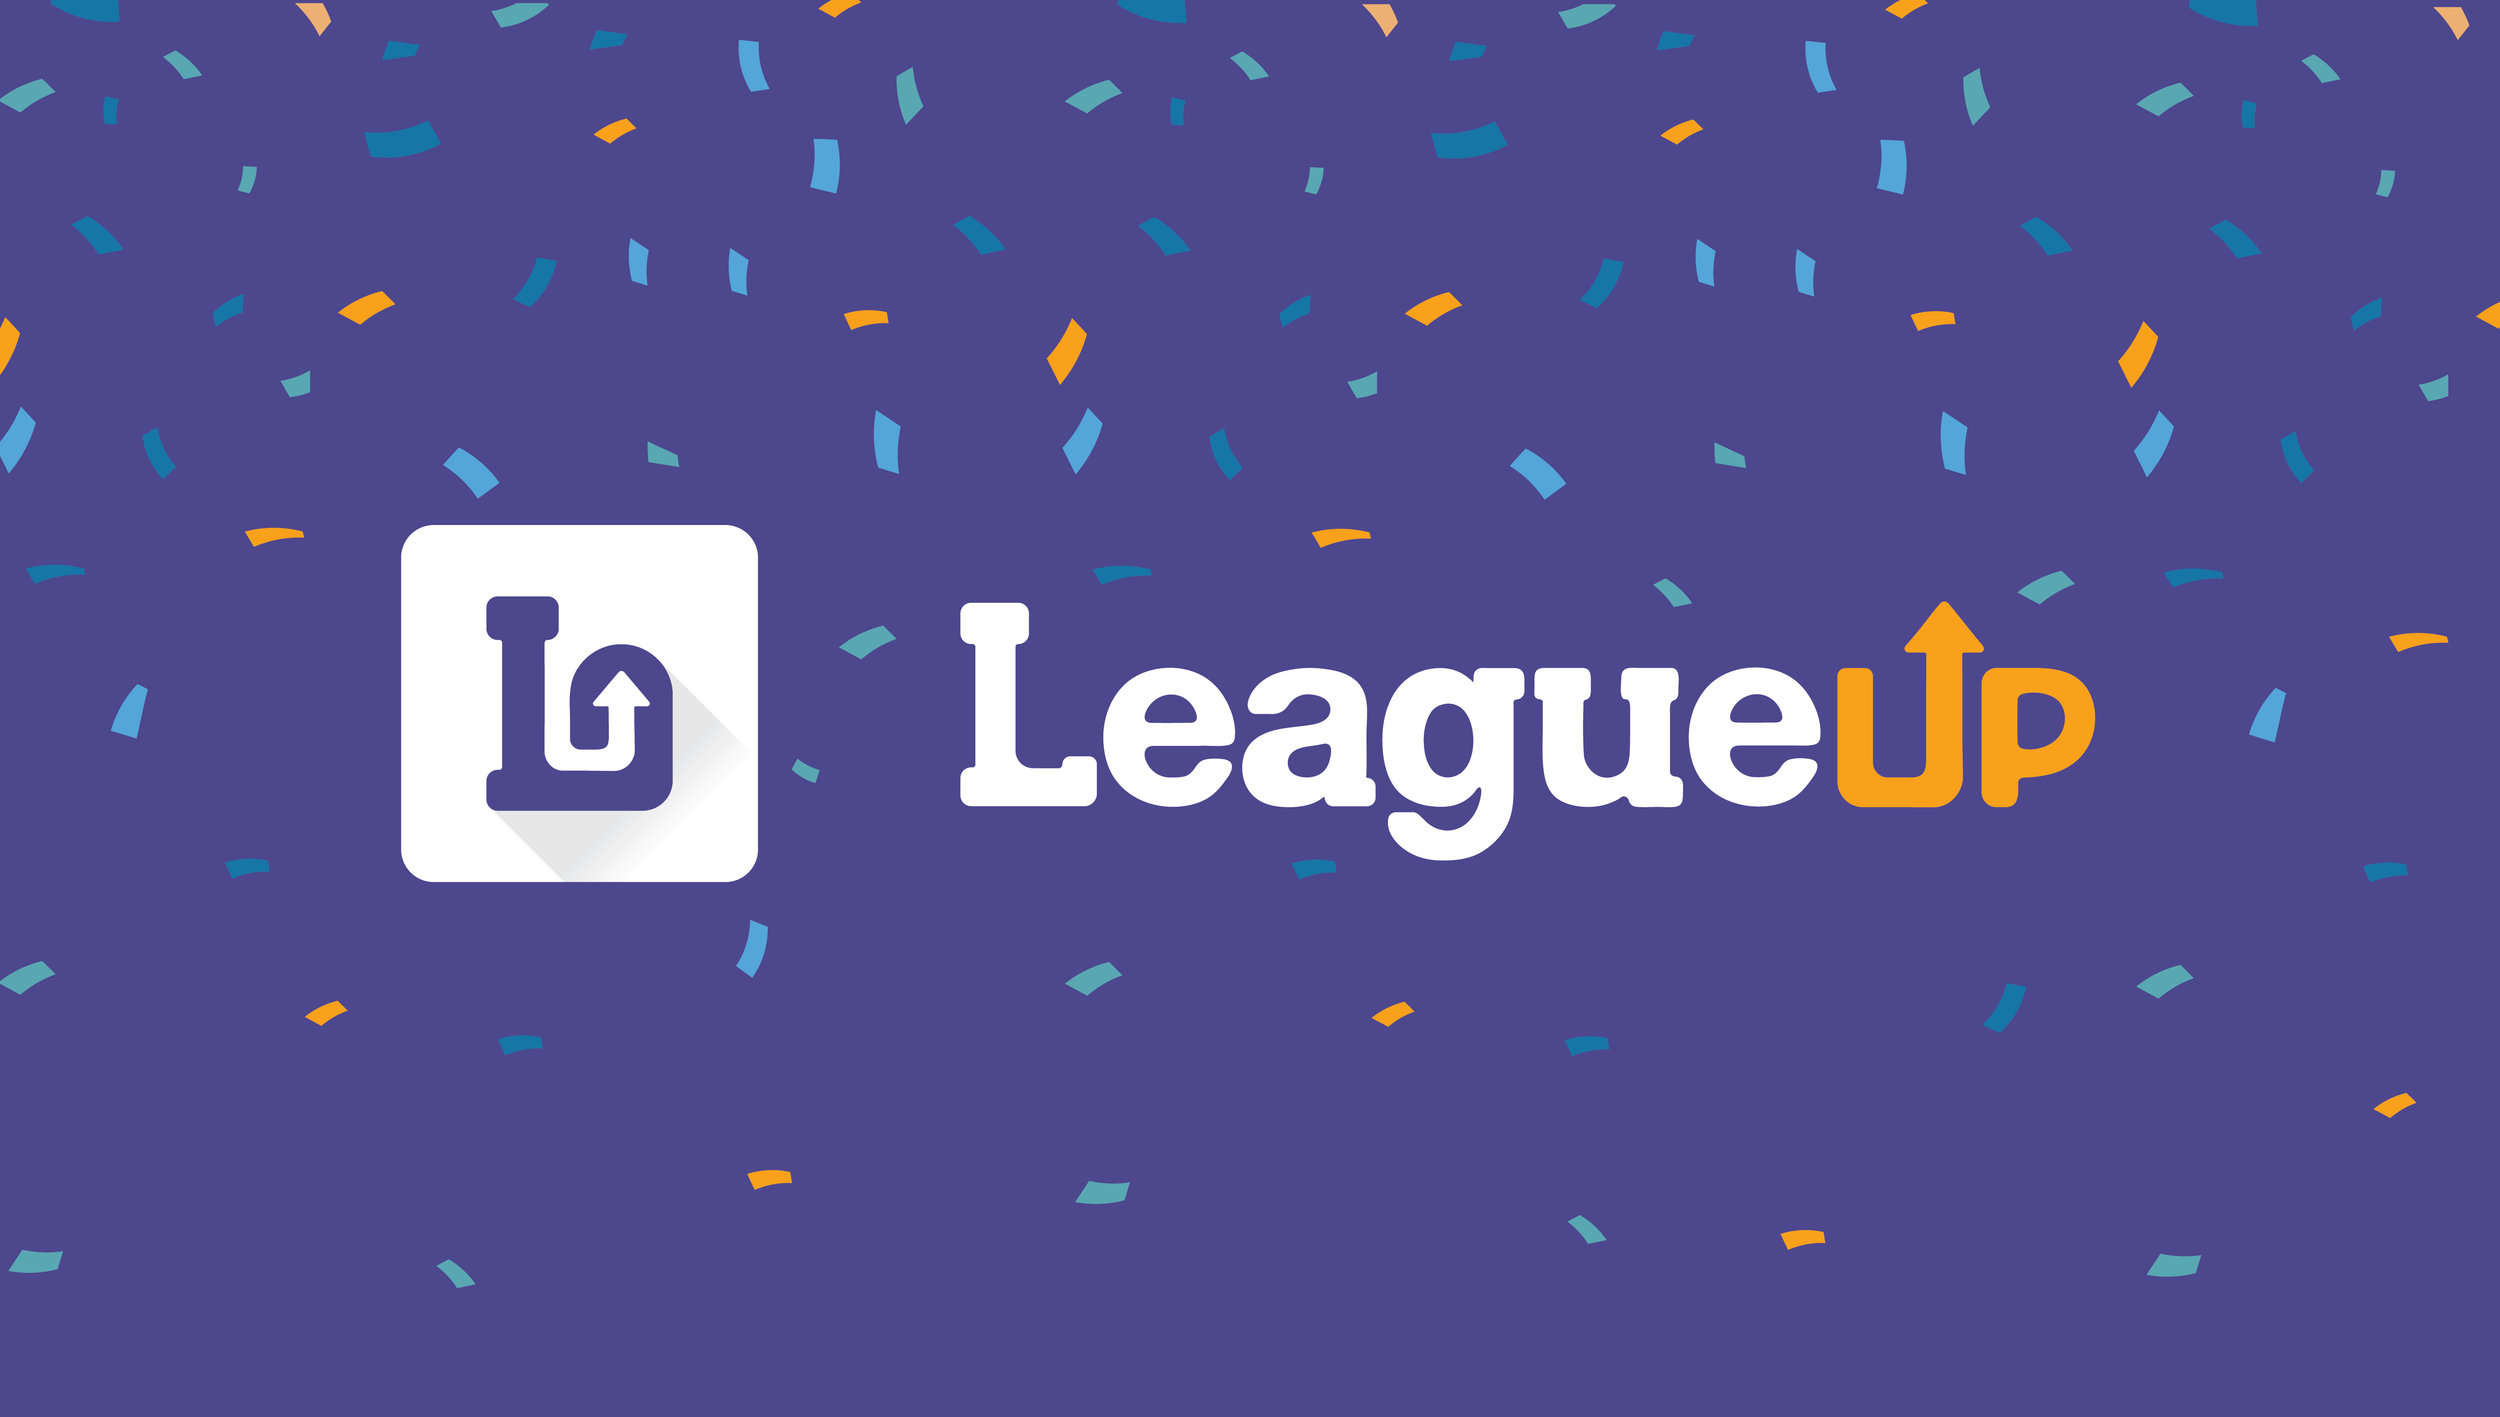 logo_league-up-06.jpg